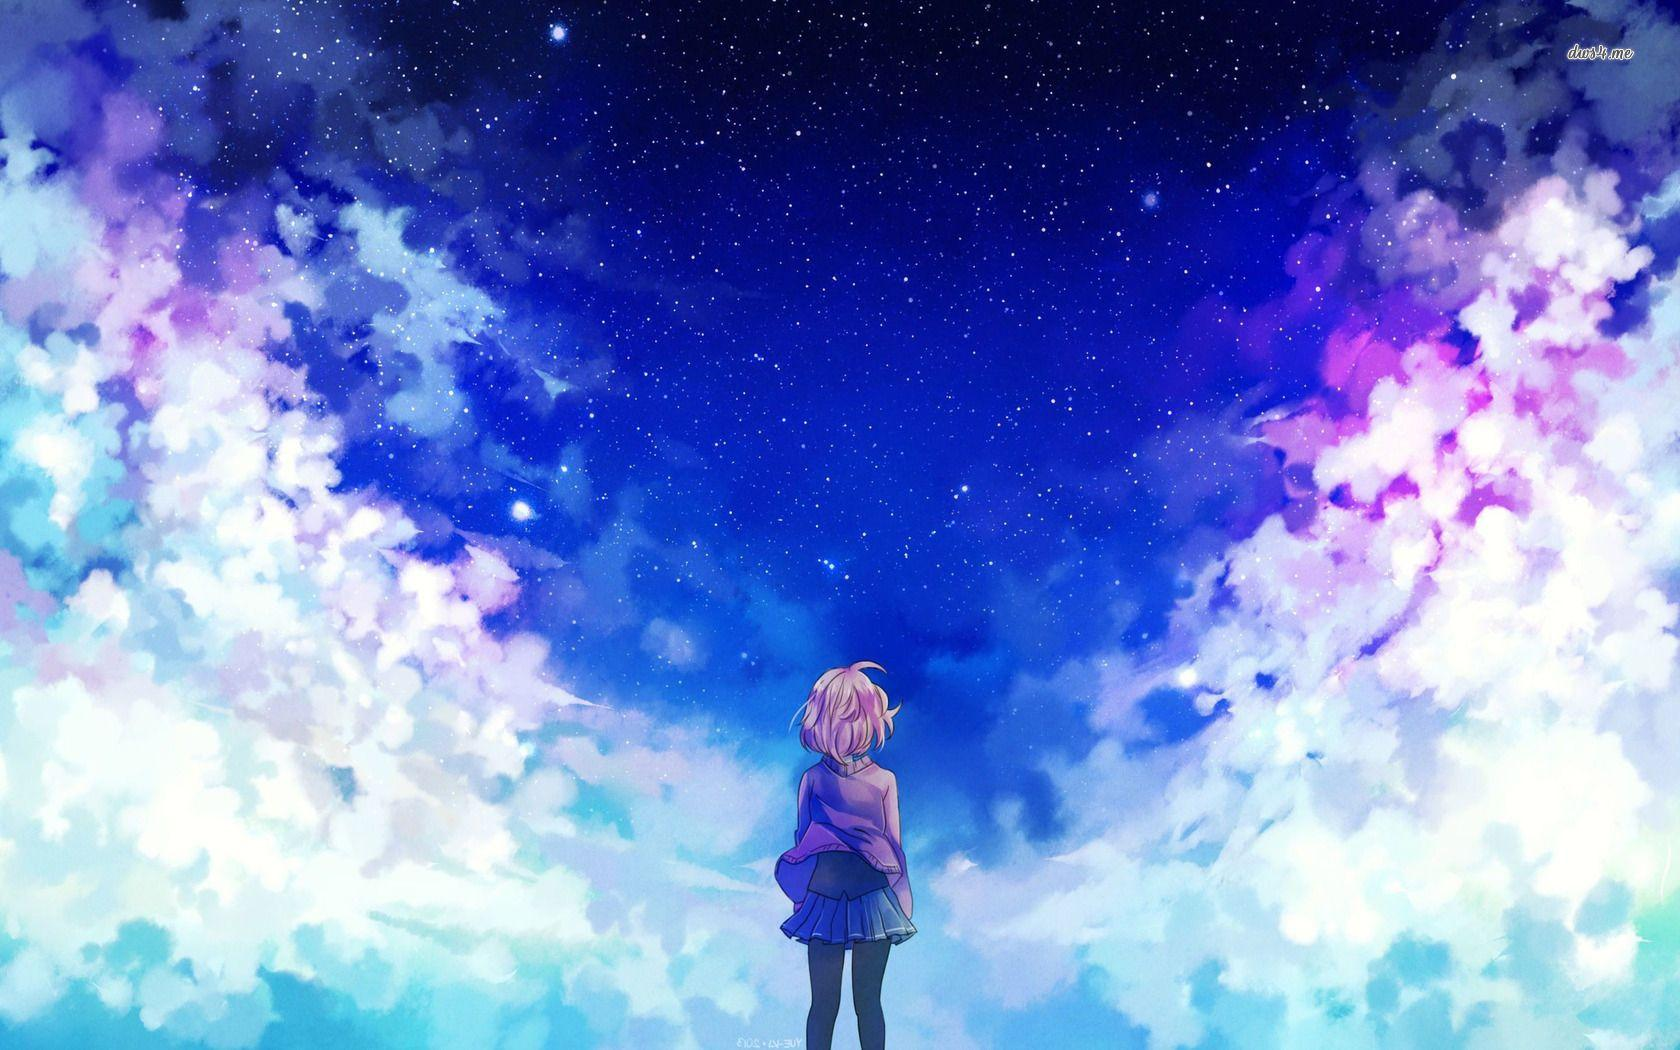 Beyond the Boundary wallpapers